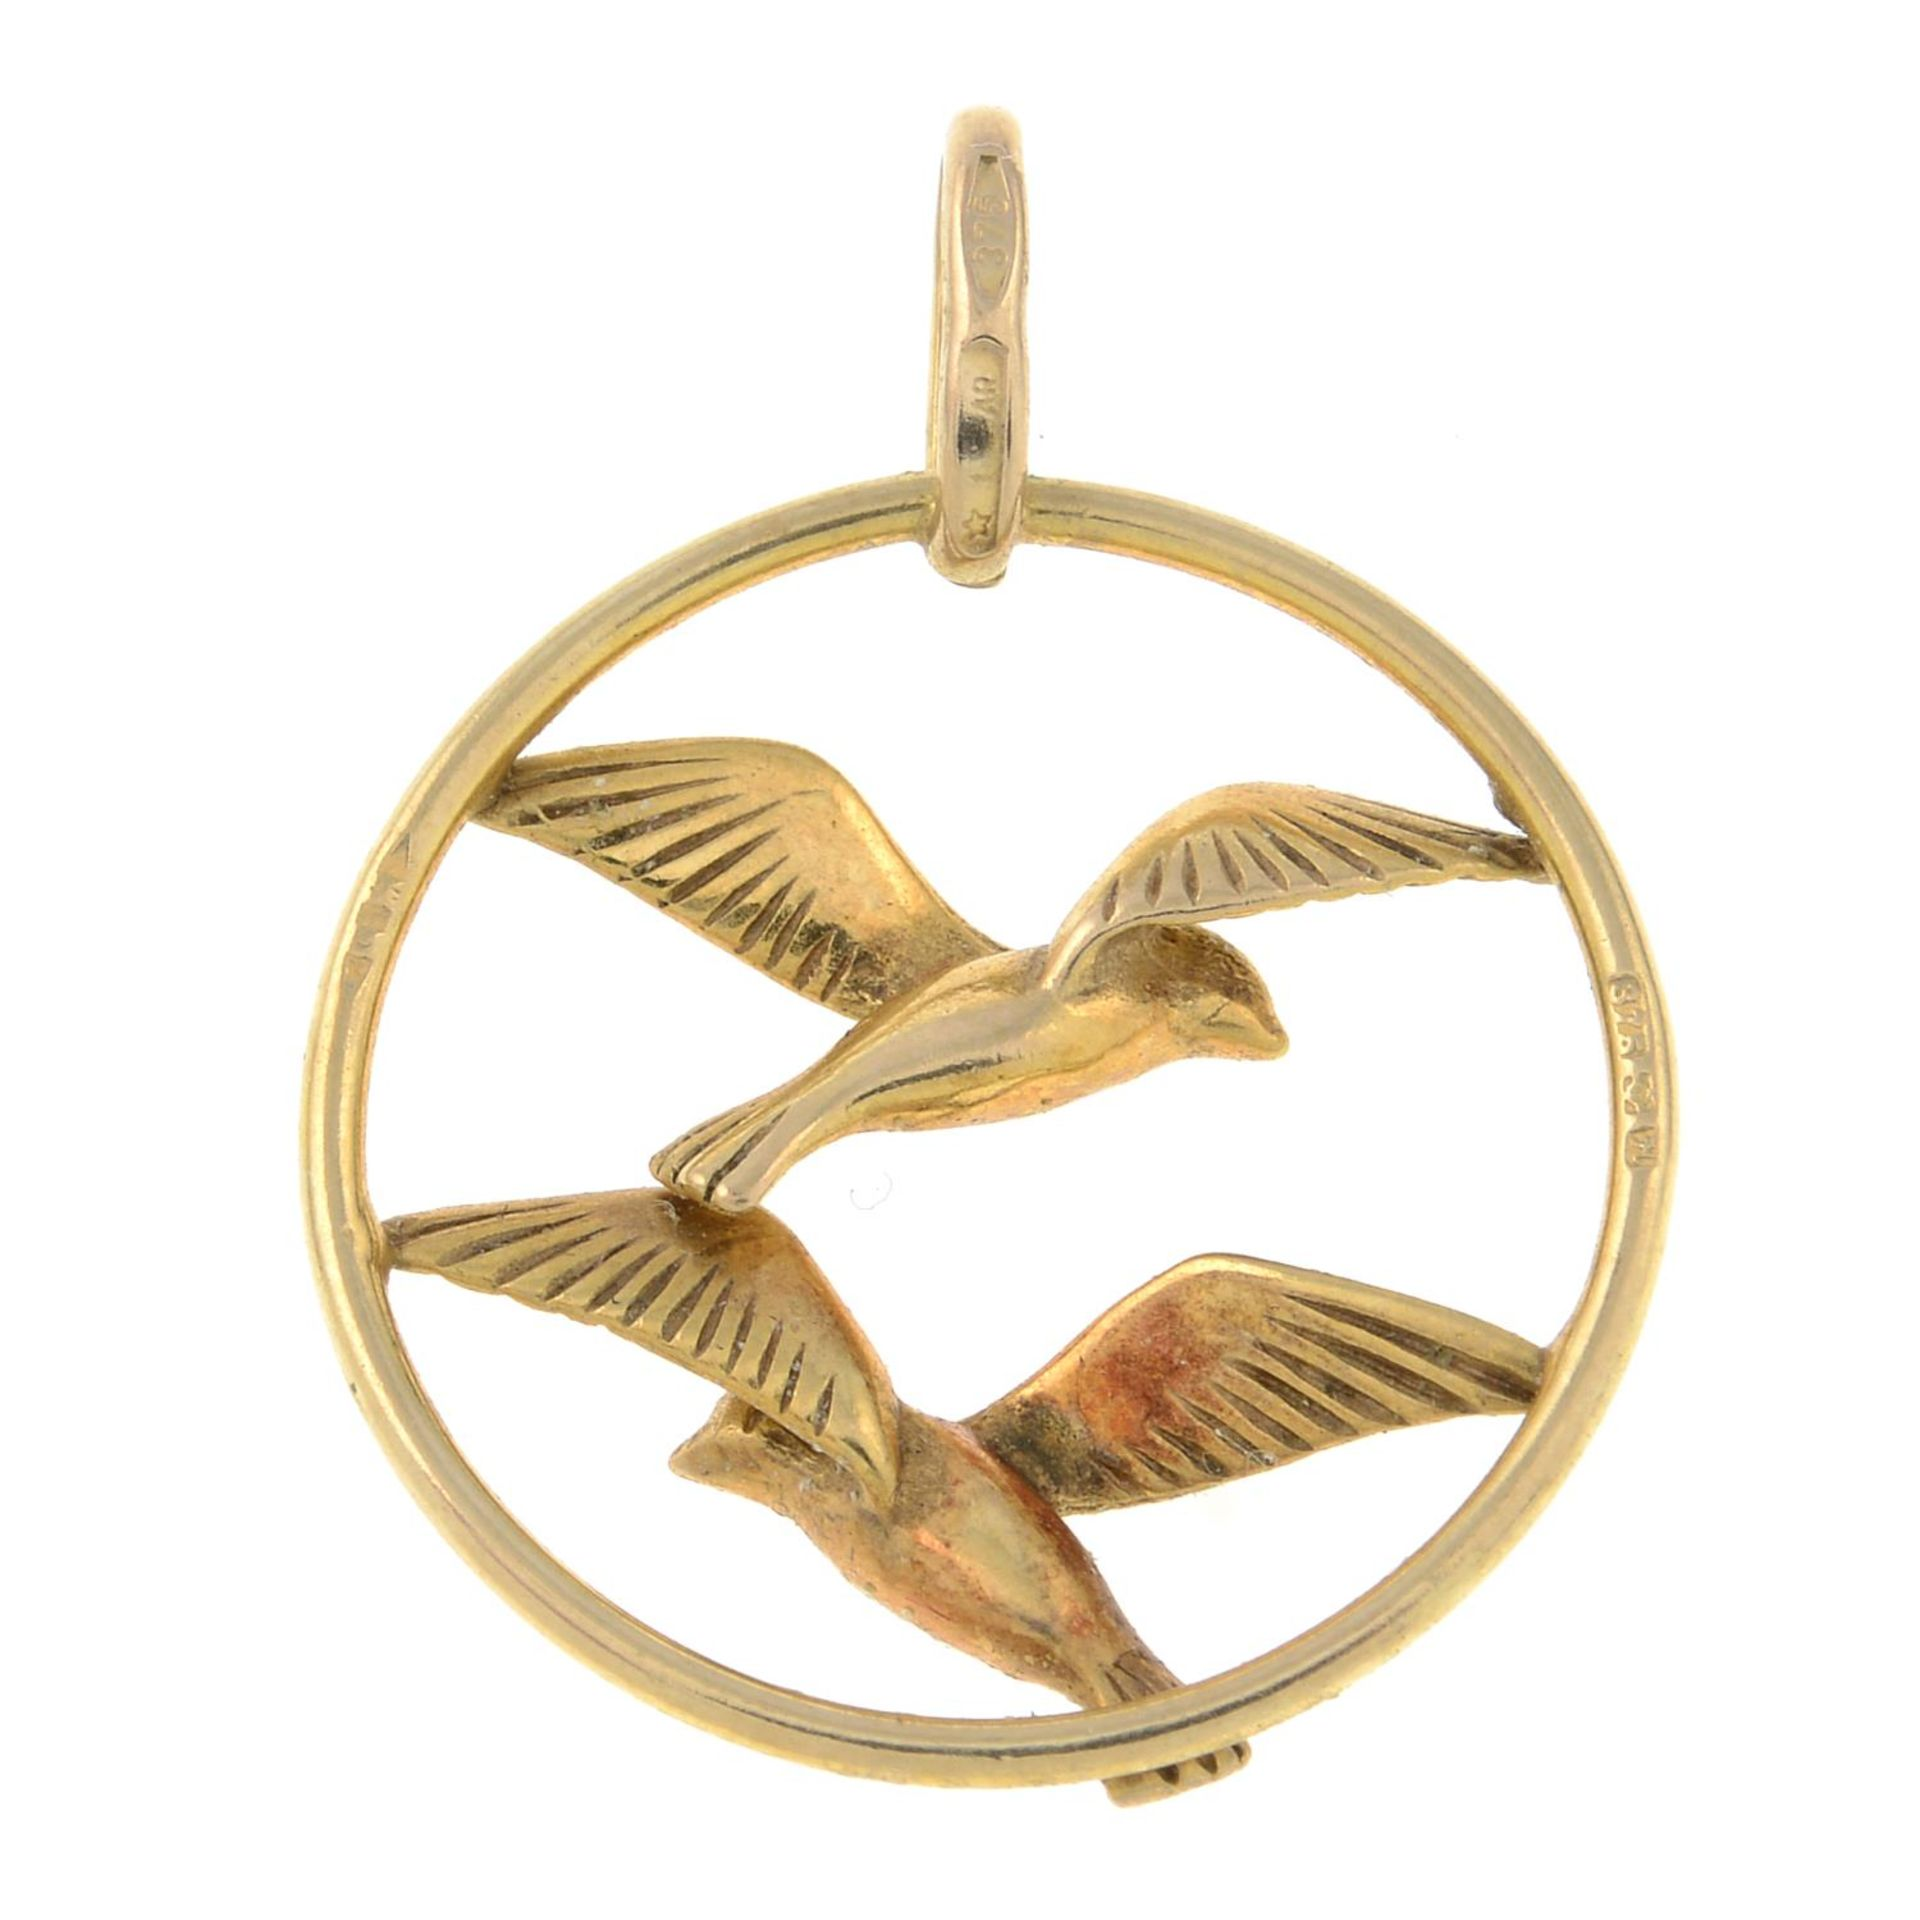 A 9ct gold openwork pendant, designed to depict two birds in flight.Import marks for 9ct gold. - Bild 2 aus 2